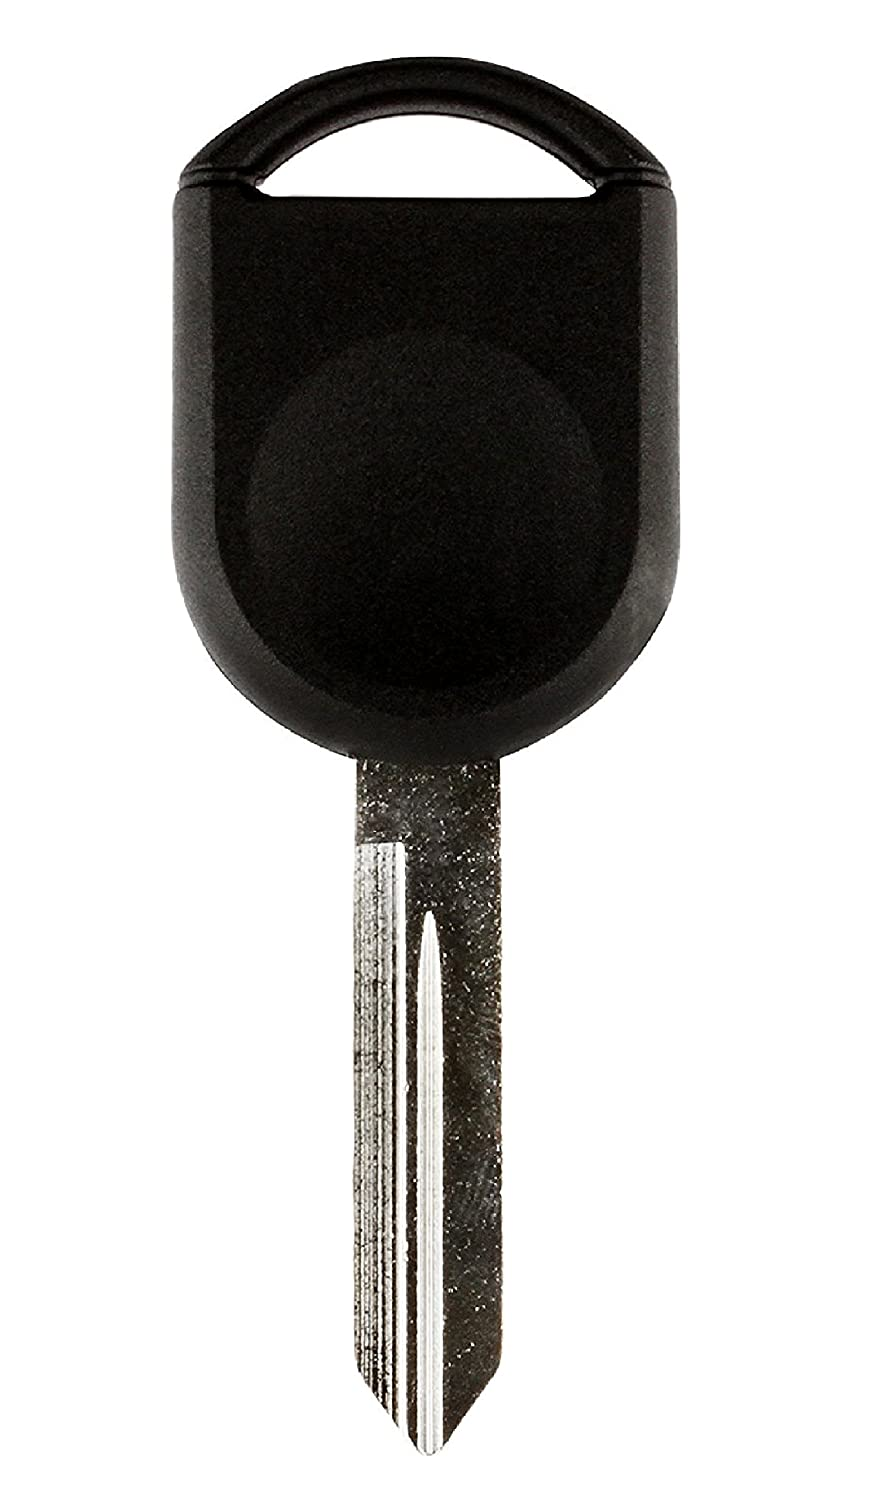 Amazon.com: S&I Remotes Key Replacement Ignition Chipped Transponder Blank Compatible with 80 Bit (Yellow): Automotive